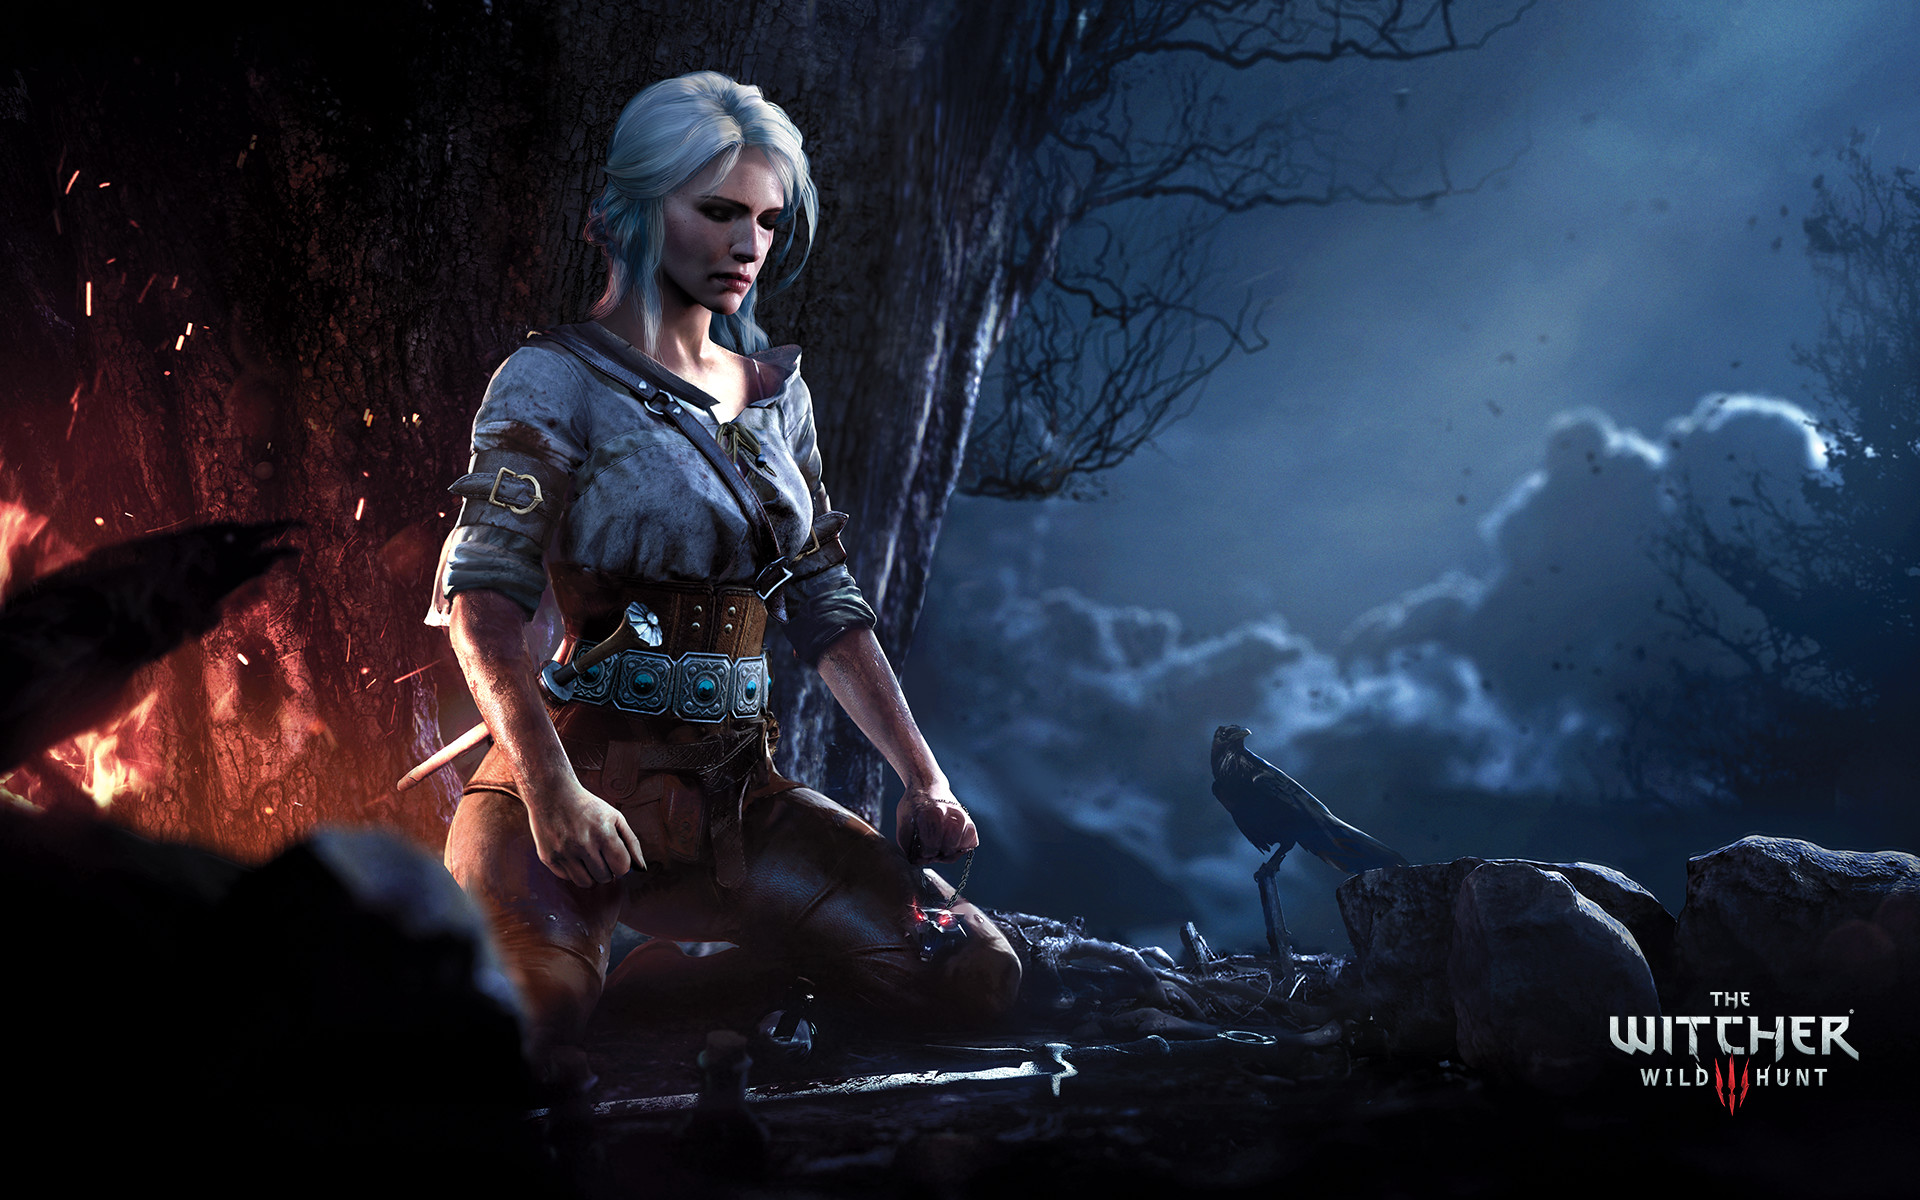 The Witcher 3 Wild Hunt Hd Wallpaper Background Image